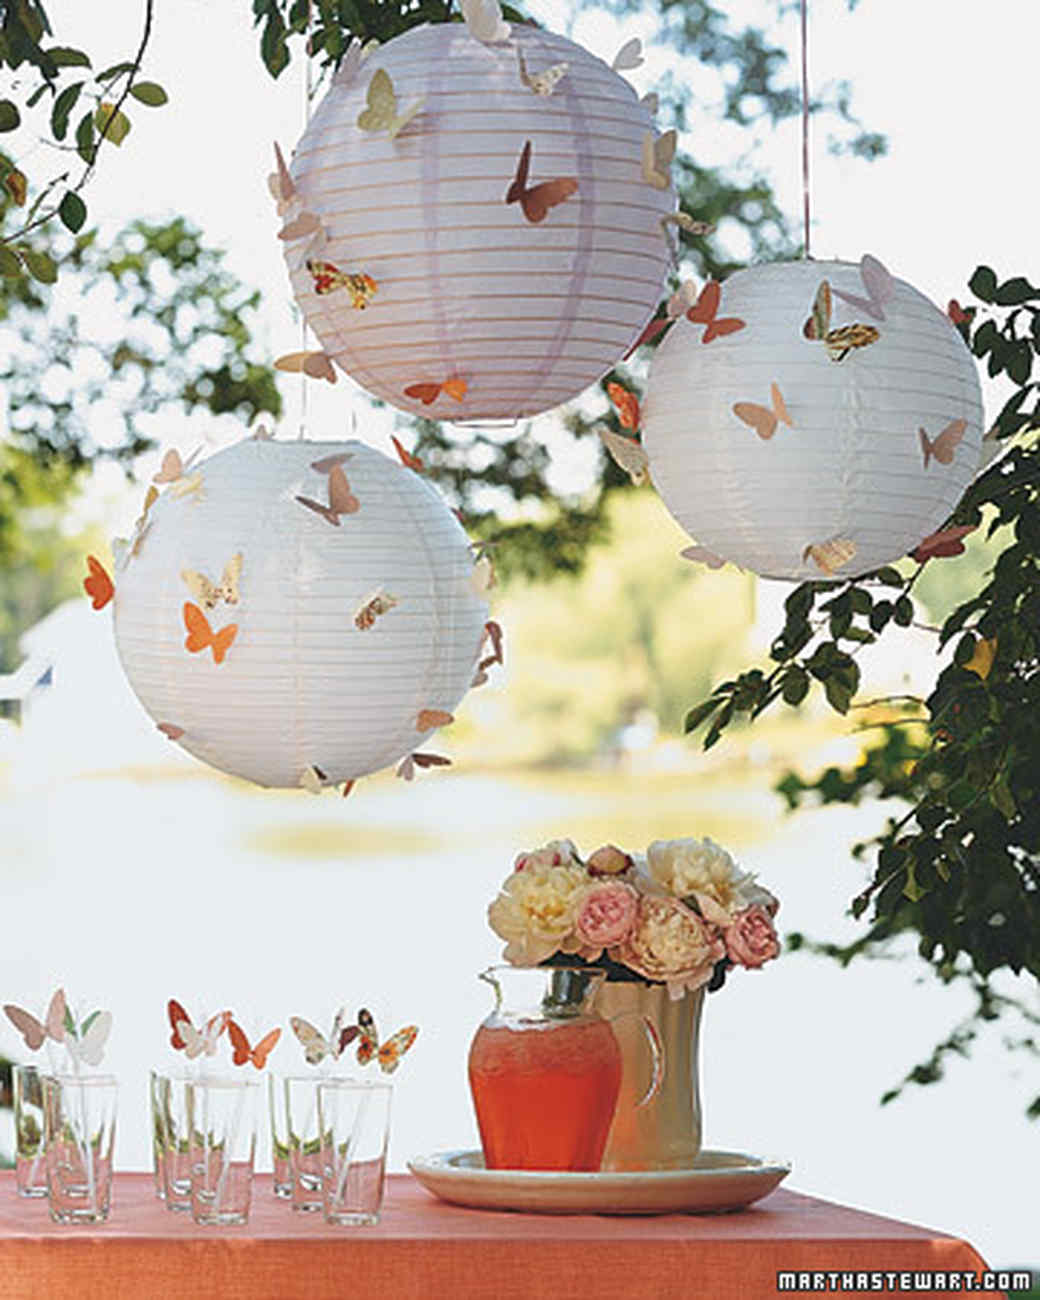 Engagement Party Decoration Ideas Home engagement party decoration ideas home engagement party decoration ideas home engagement party decoration best images Winged Wonders